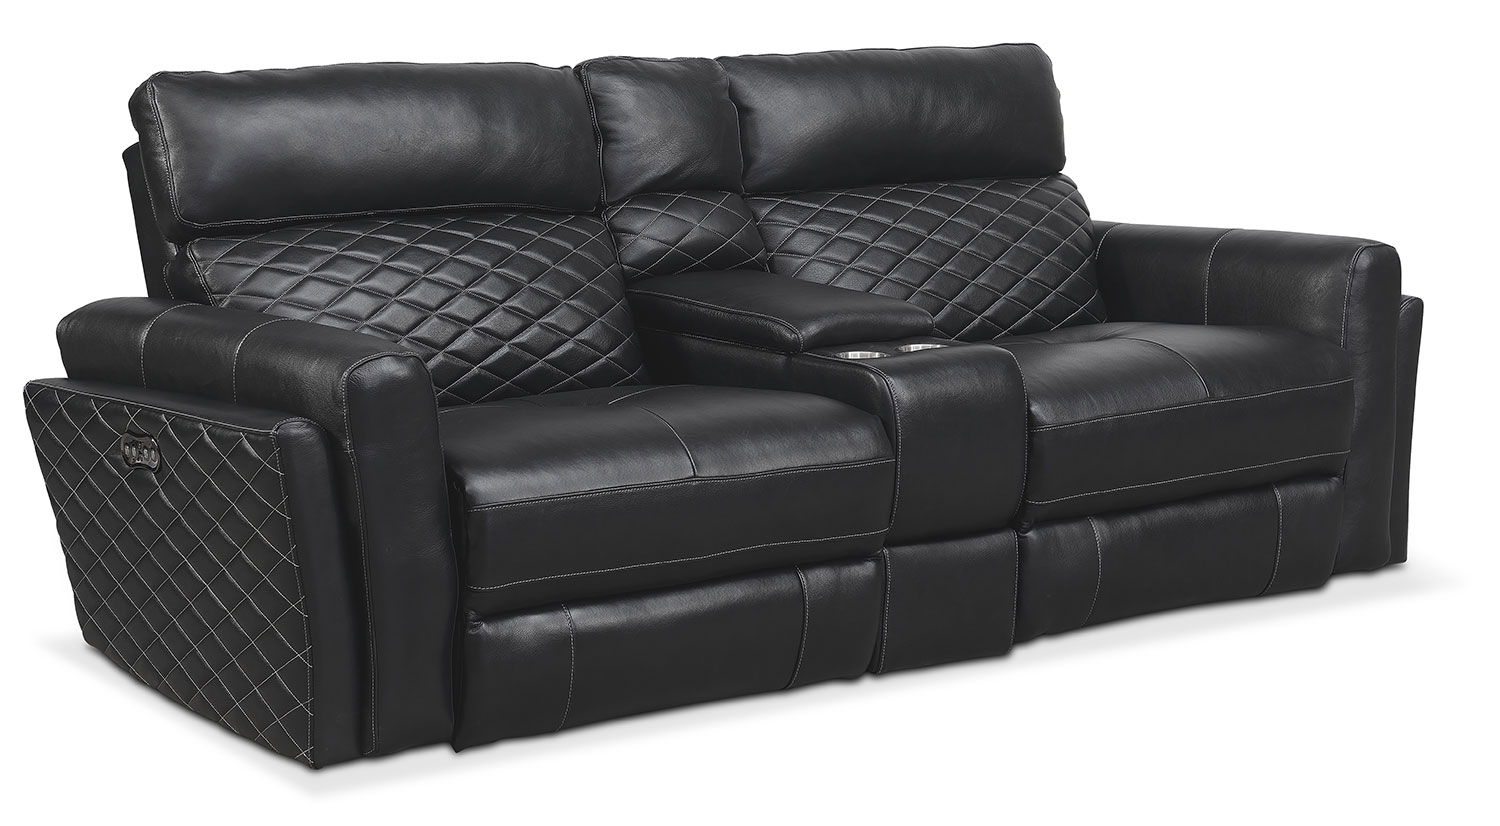 Living Room Furniture - Catalina 3-Piece Power Reclining Sectional - Black